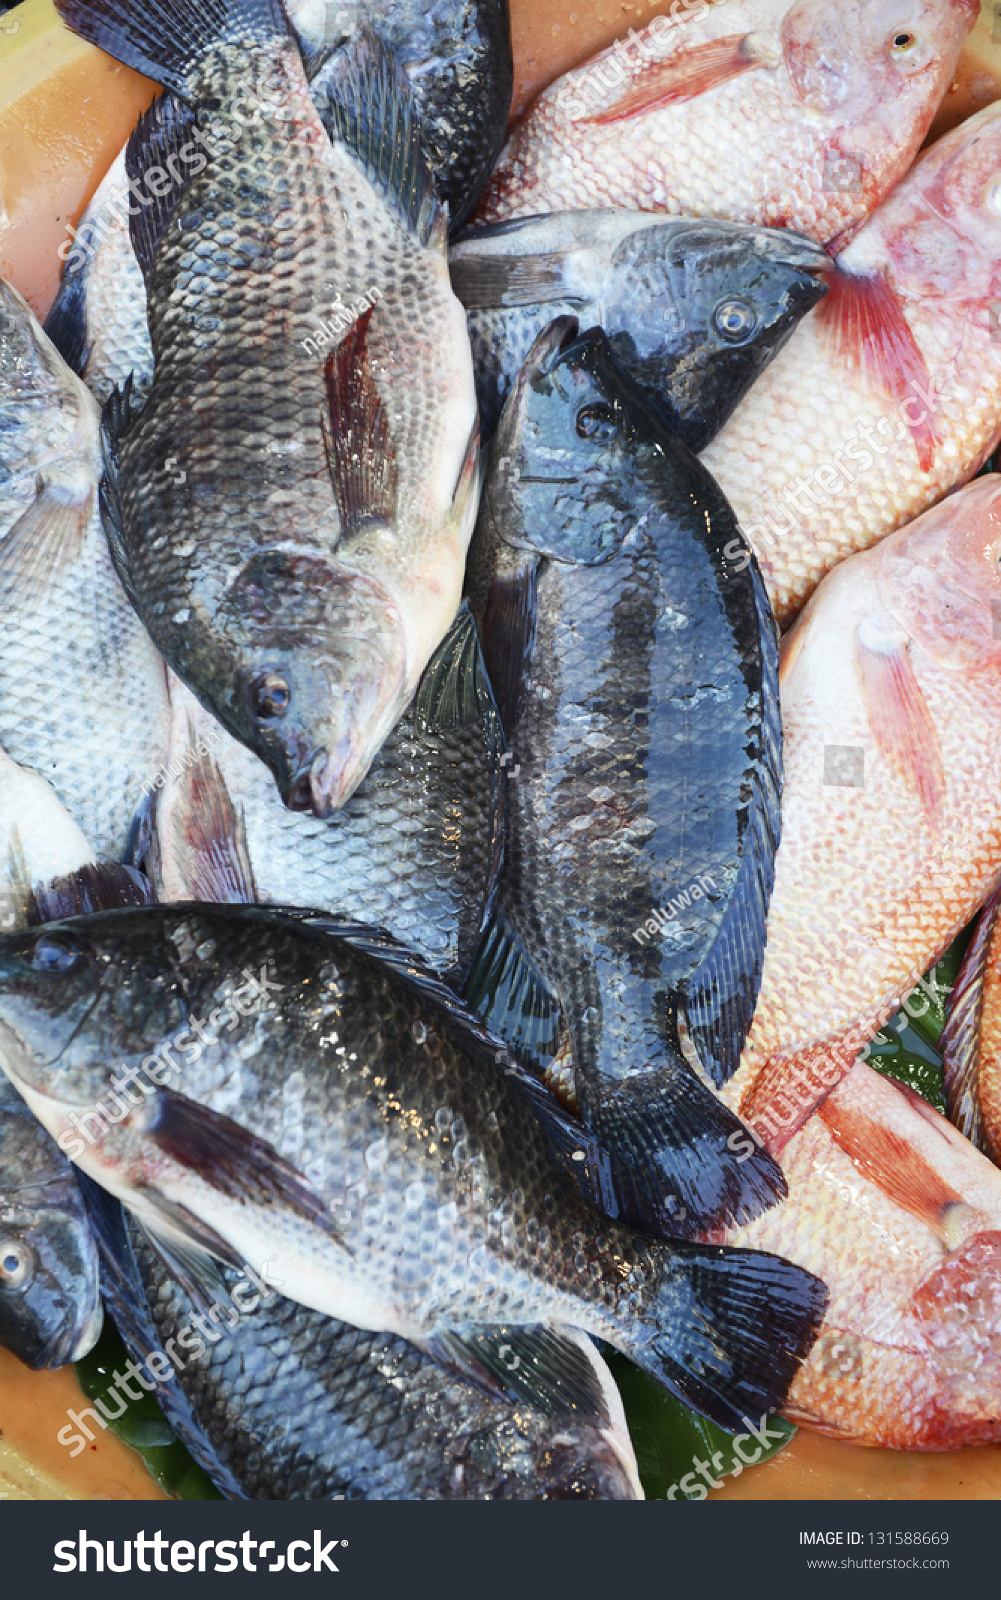 Newly catch bunch of tilapia fish on the market stock for What type of fish is tilapia